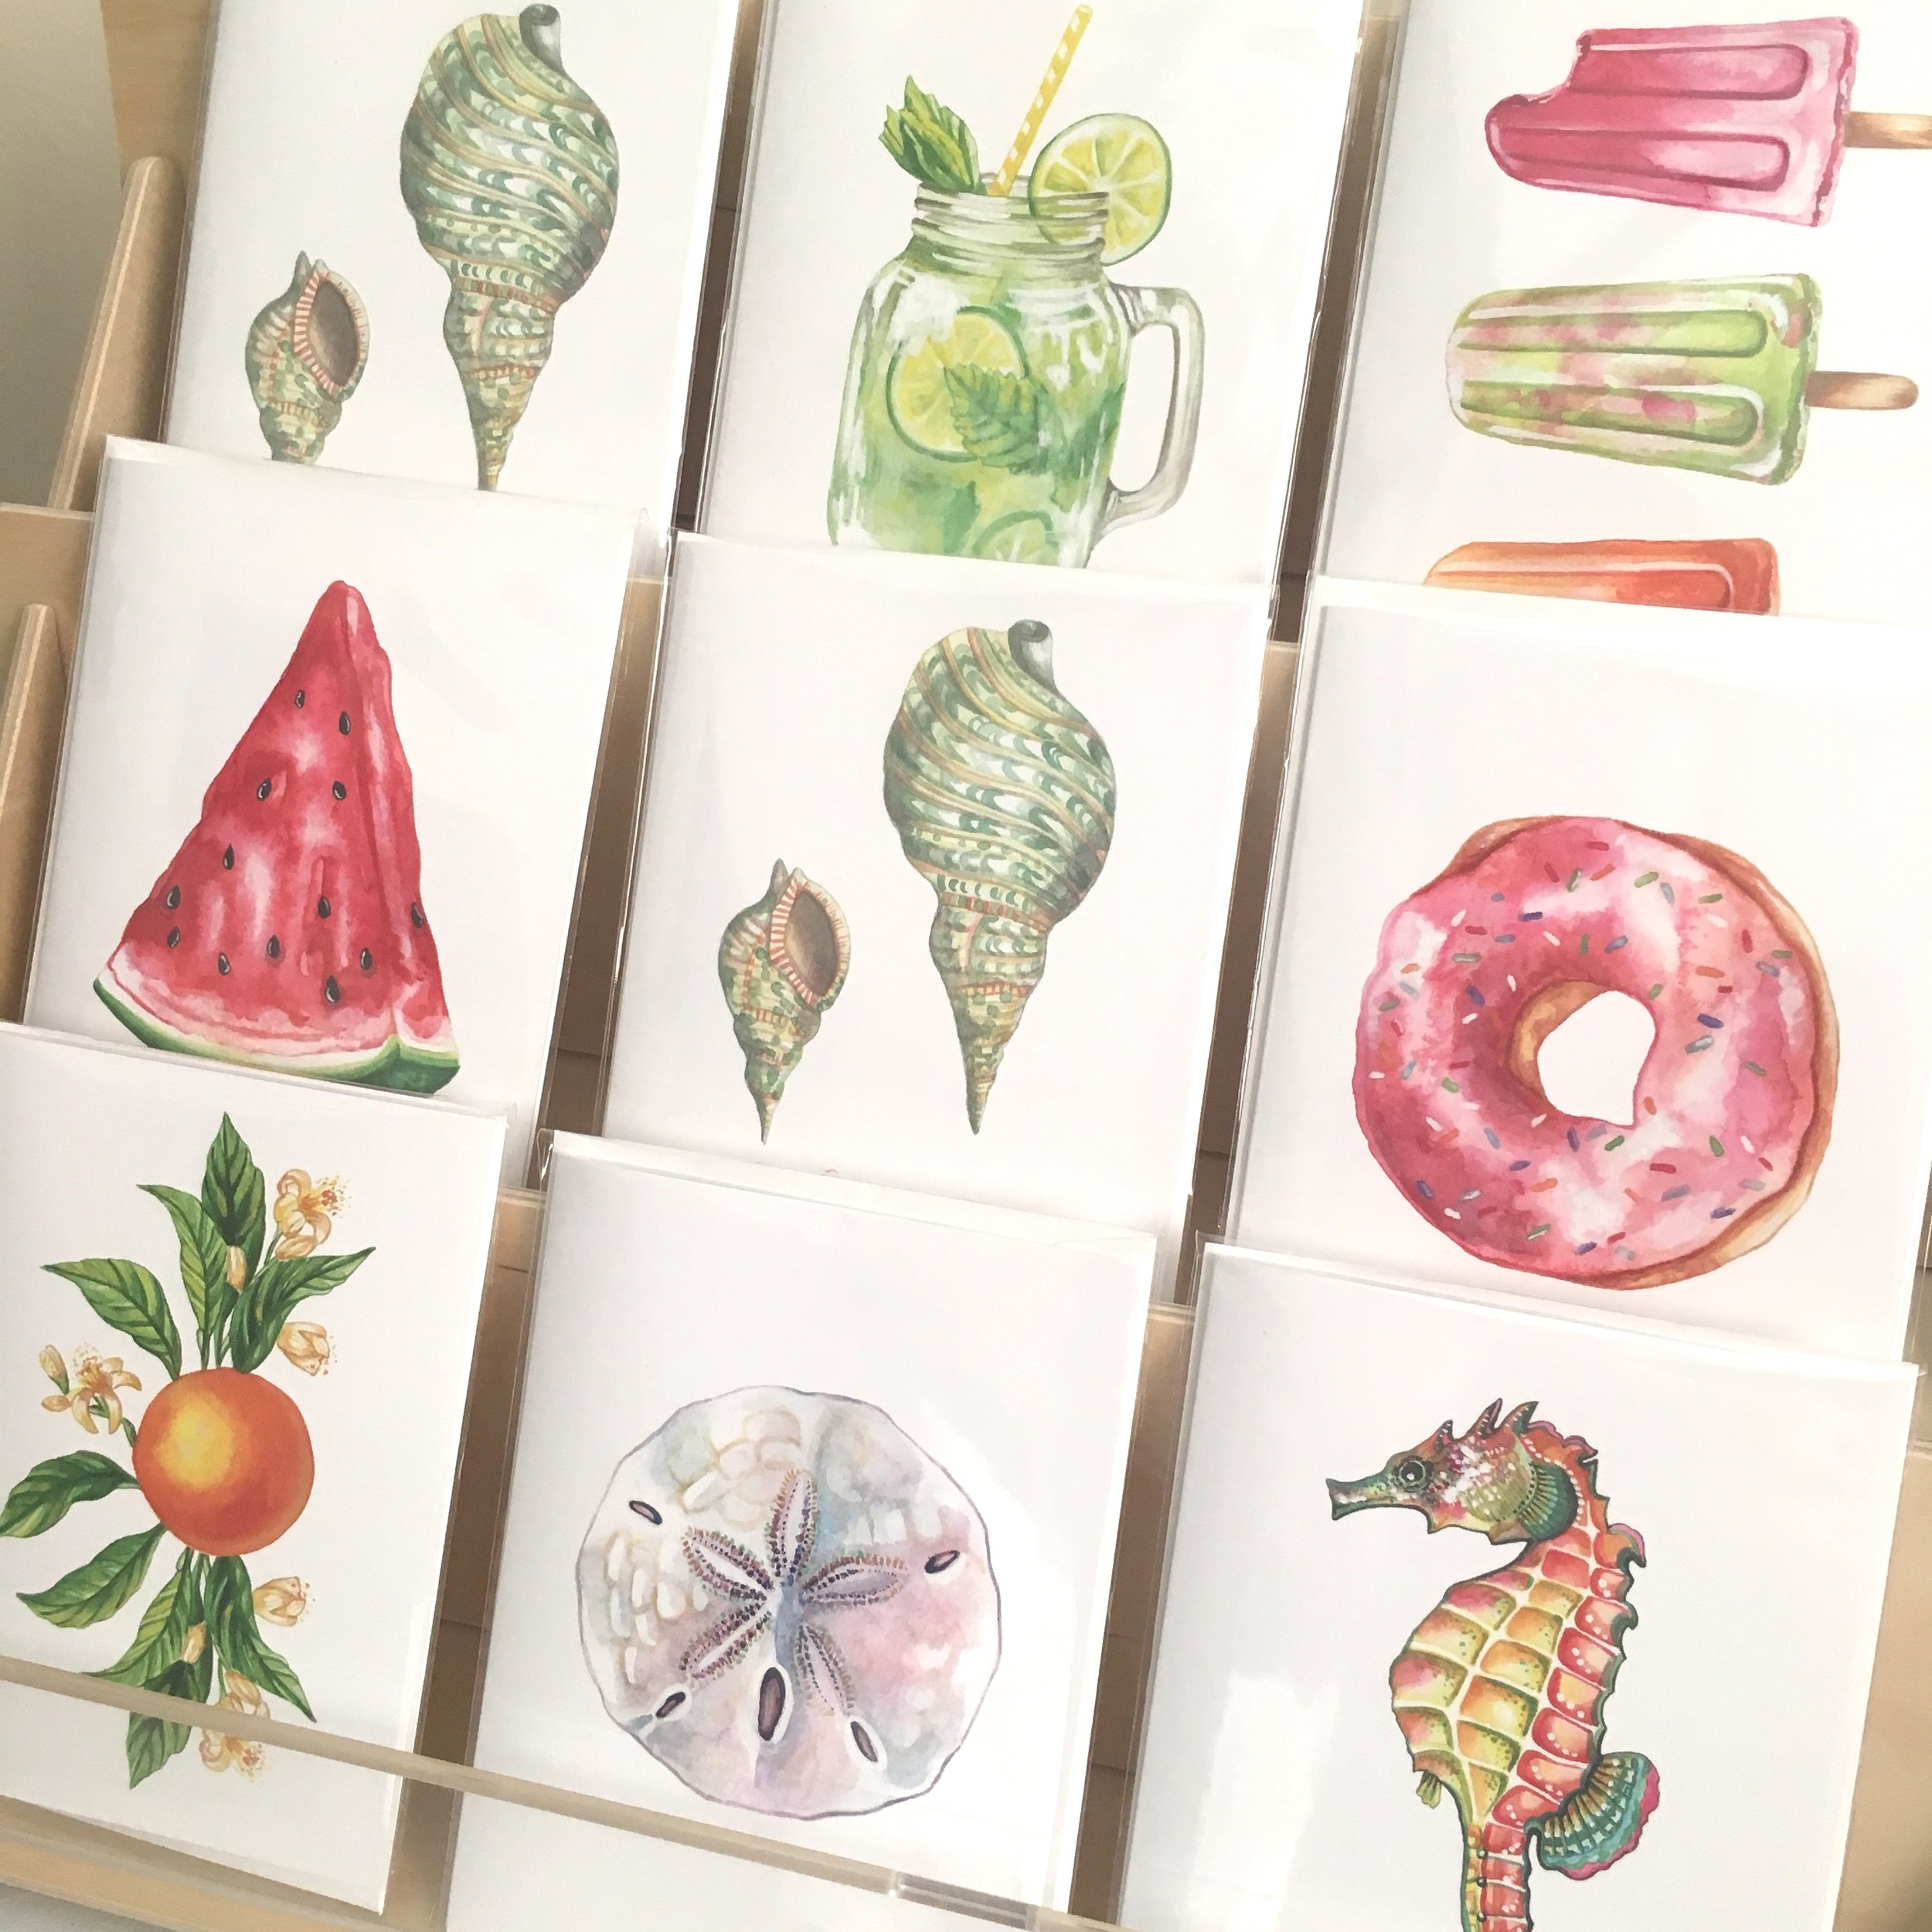 The new greeting card collection offers a variety of bright, colorful designs.